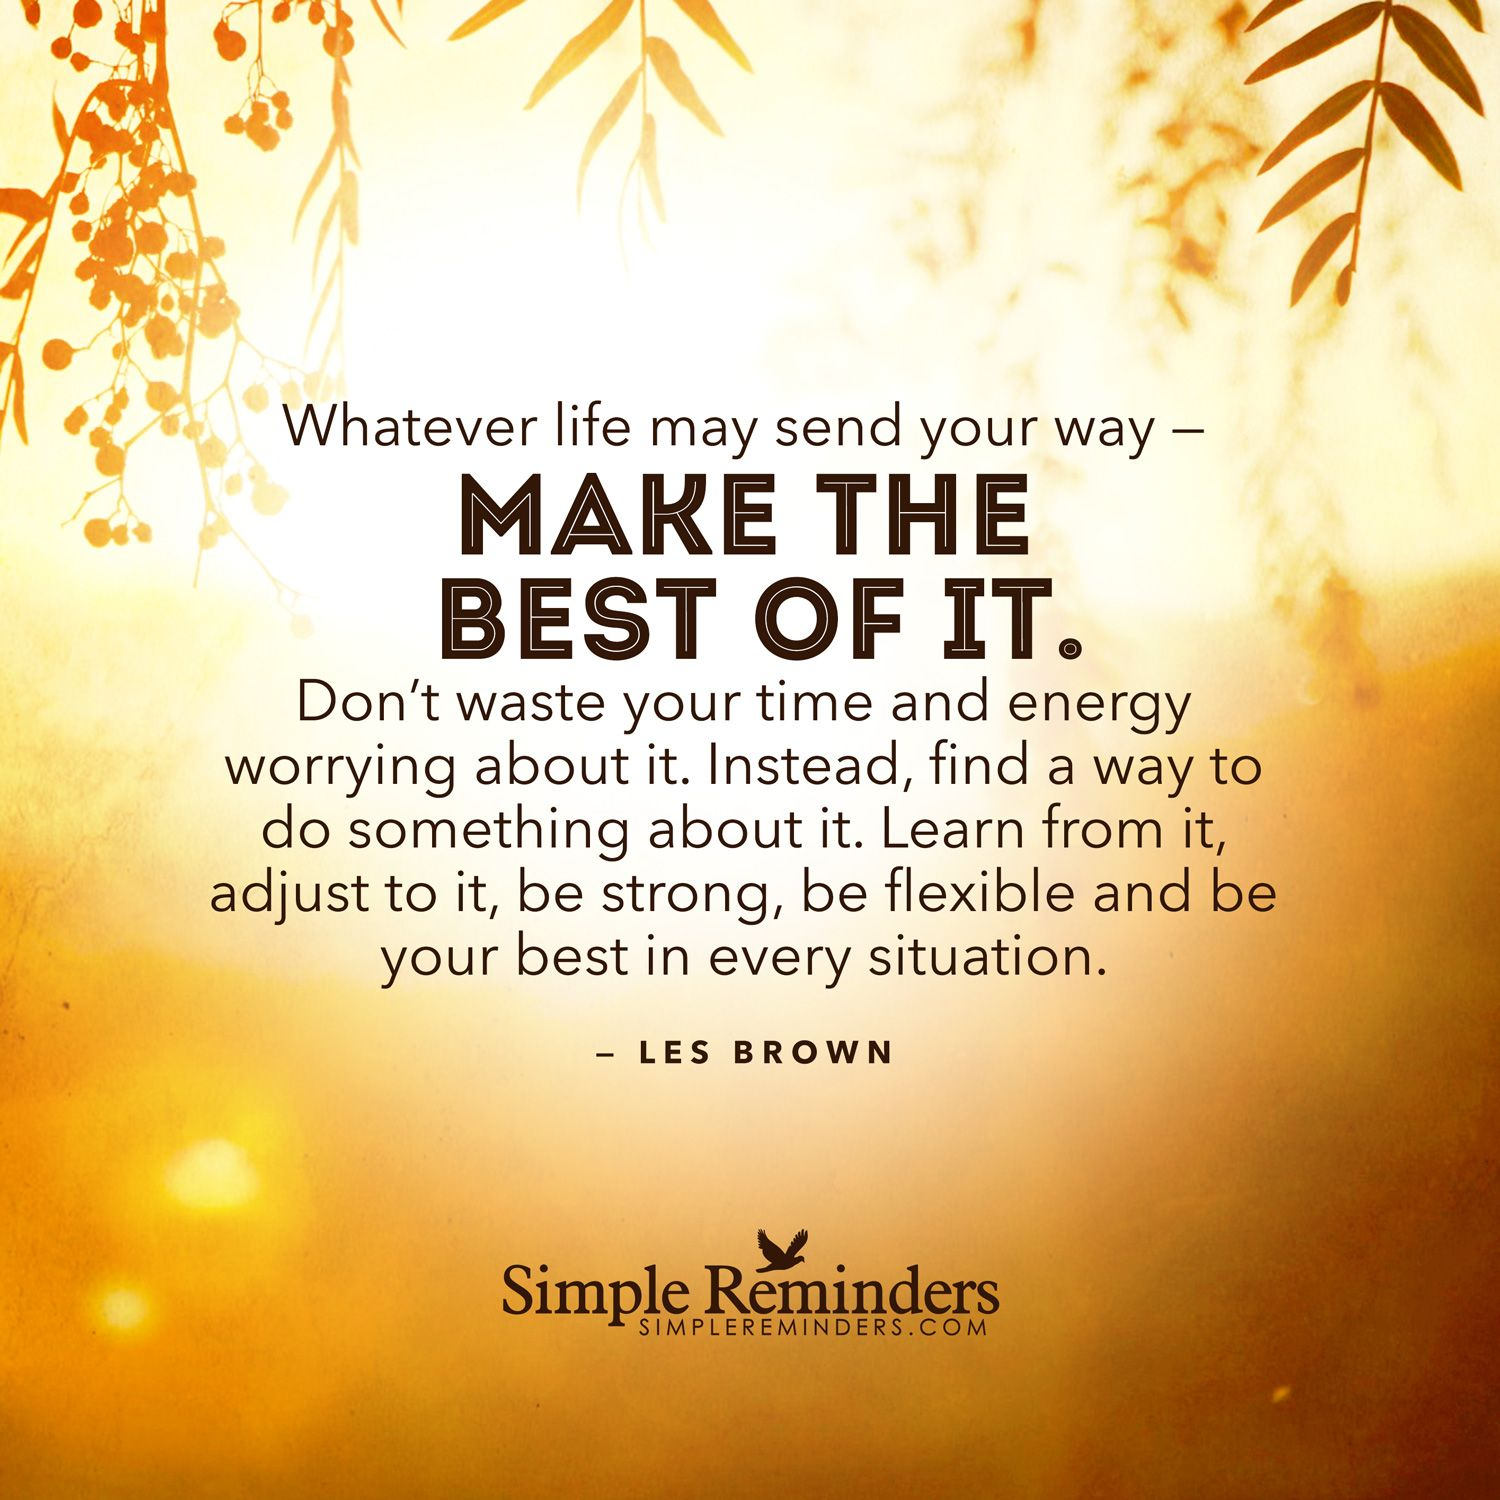 Whatever life may send your way — make the best of it. Don't waste your time and energy worrying about it. Instead, find a way to do something about it. Learn from it, adjust to it, be strong, be flexible and be your best in every situation. — Les Brown